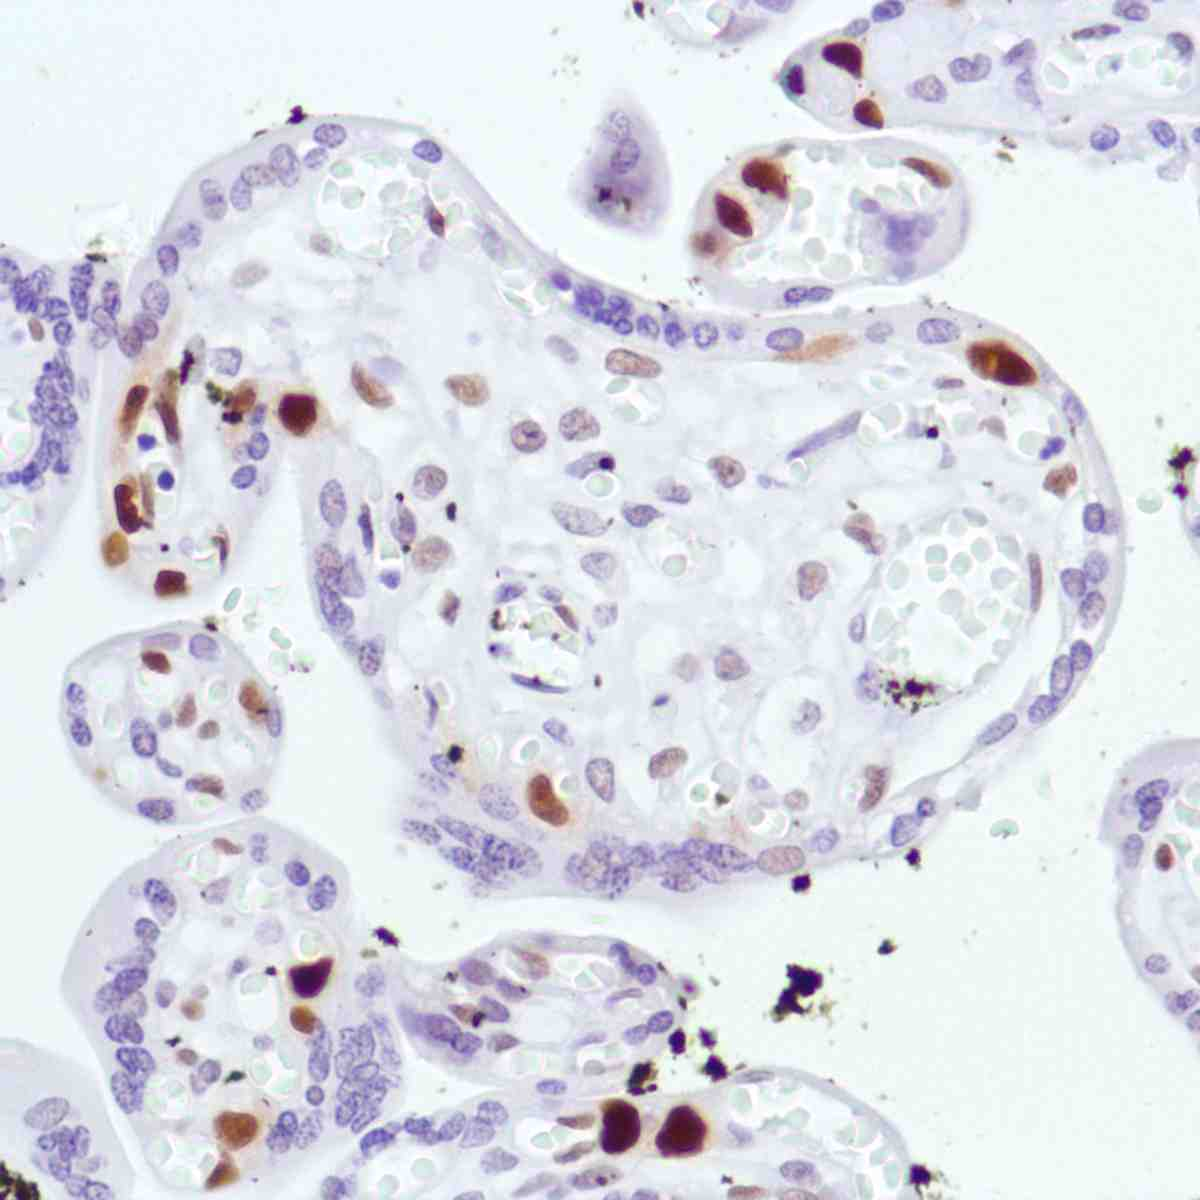 Human Placenta stained with anti-Cyclin D3 antibody